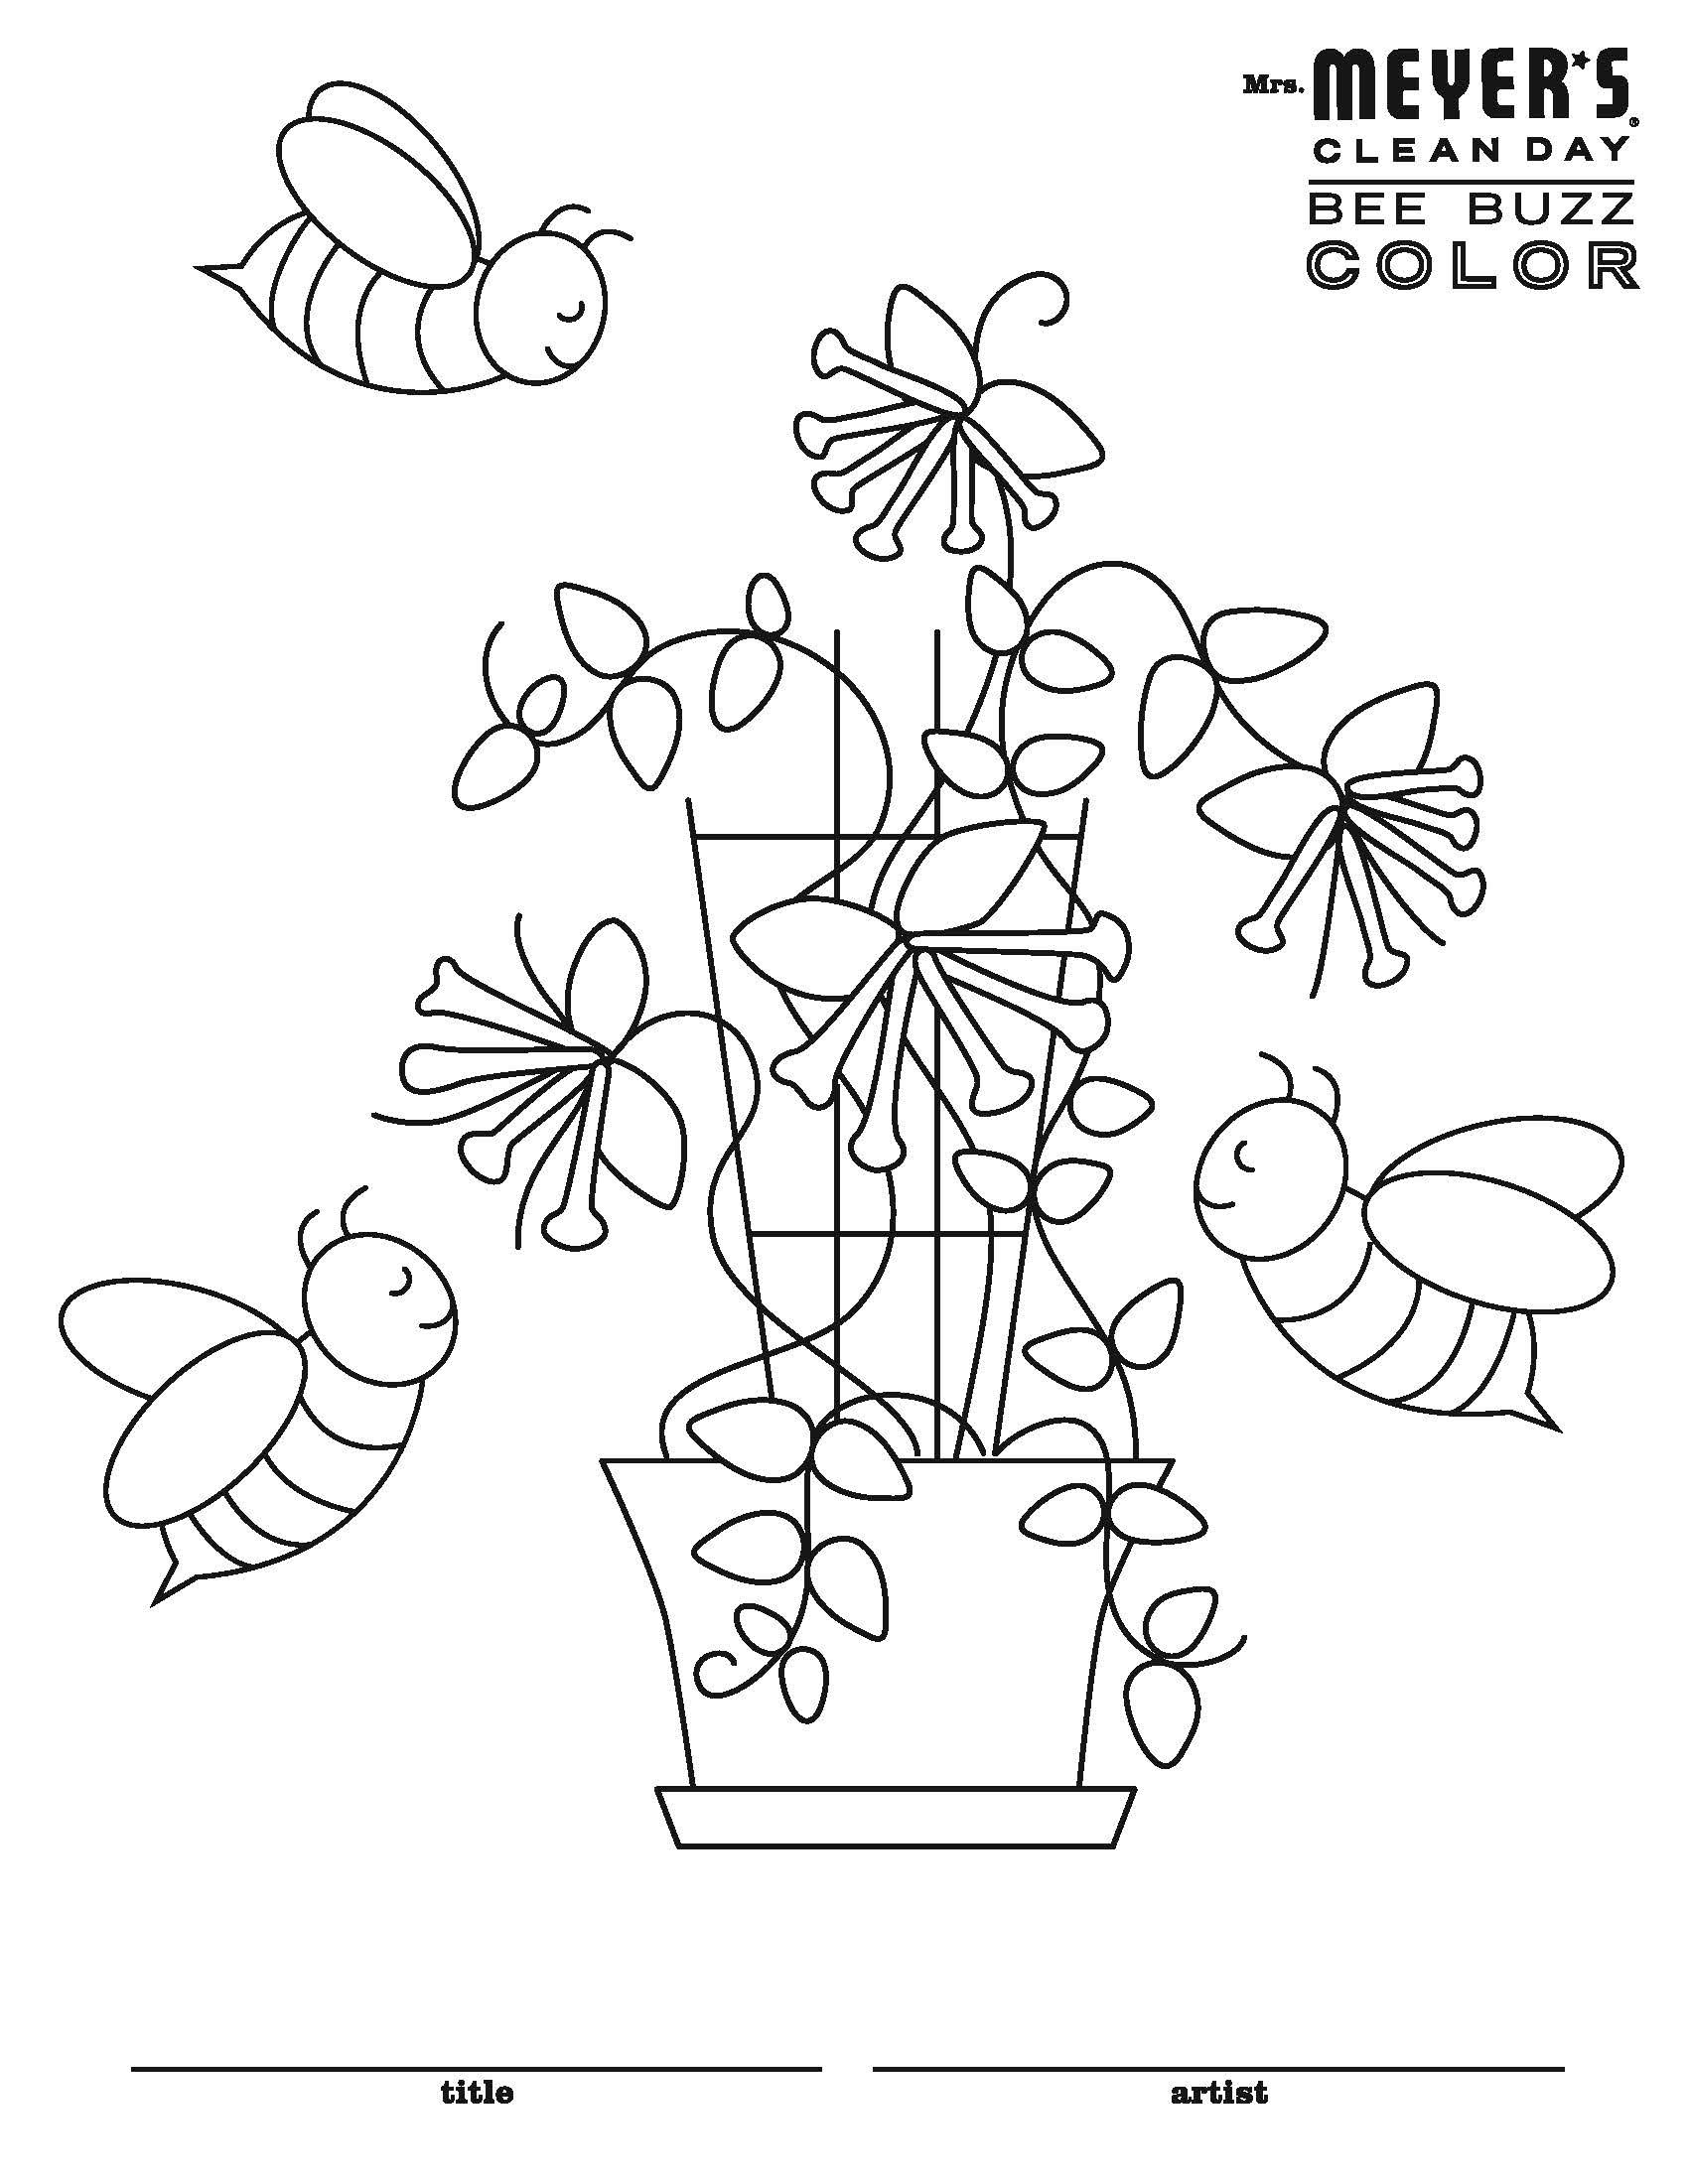 Bee Buzz Coloring Sheet Other Sheets To Choose From Too